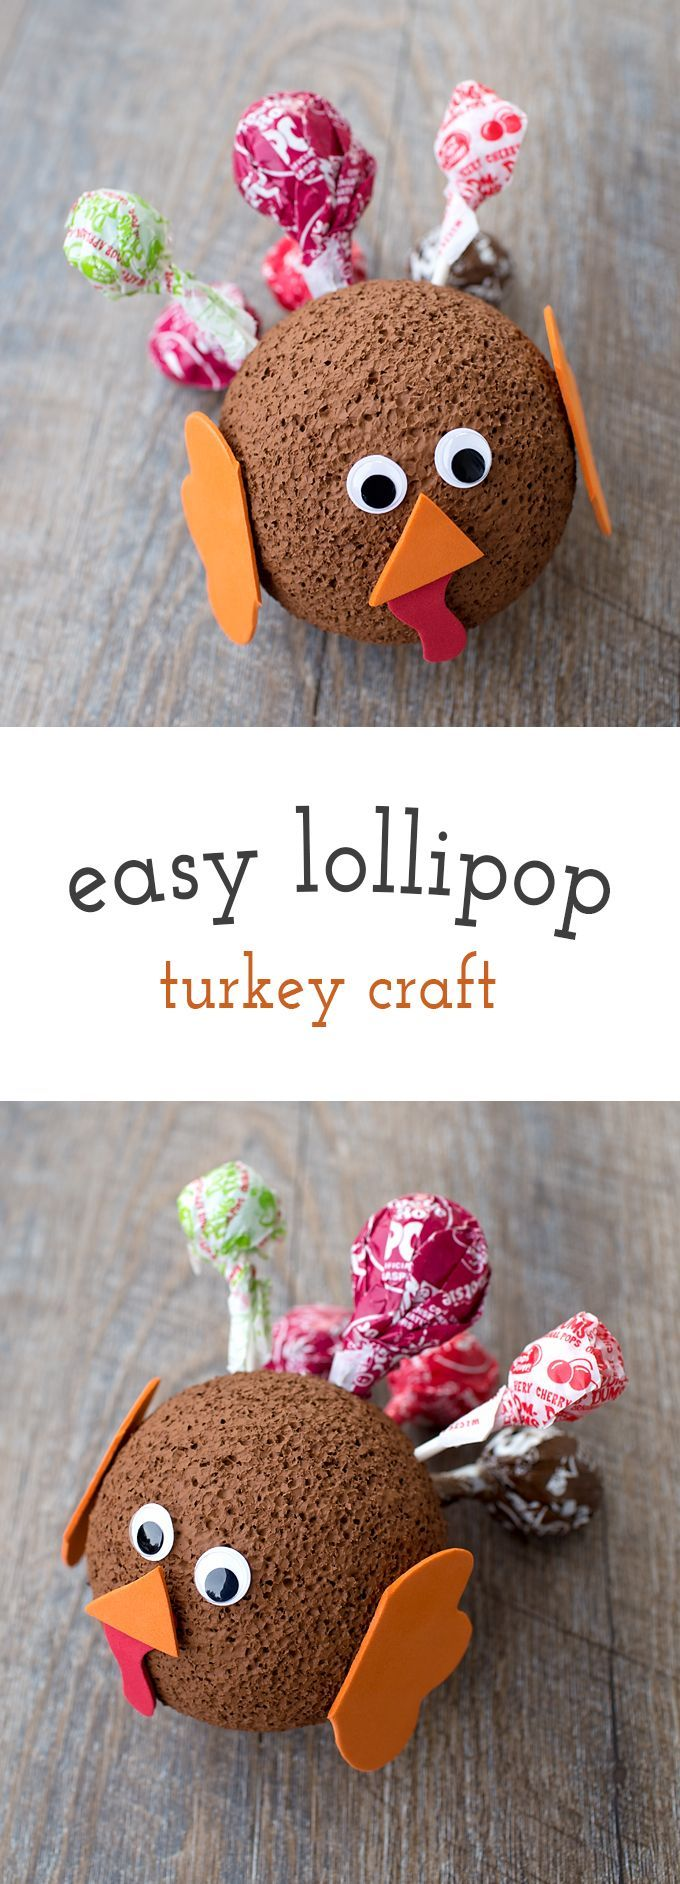 49+ Crafts for seniors for thanksgiving ideas in 2021